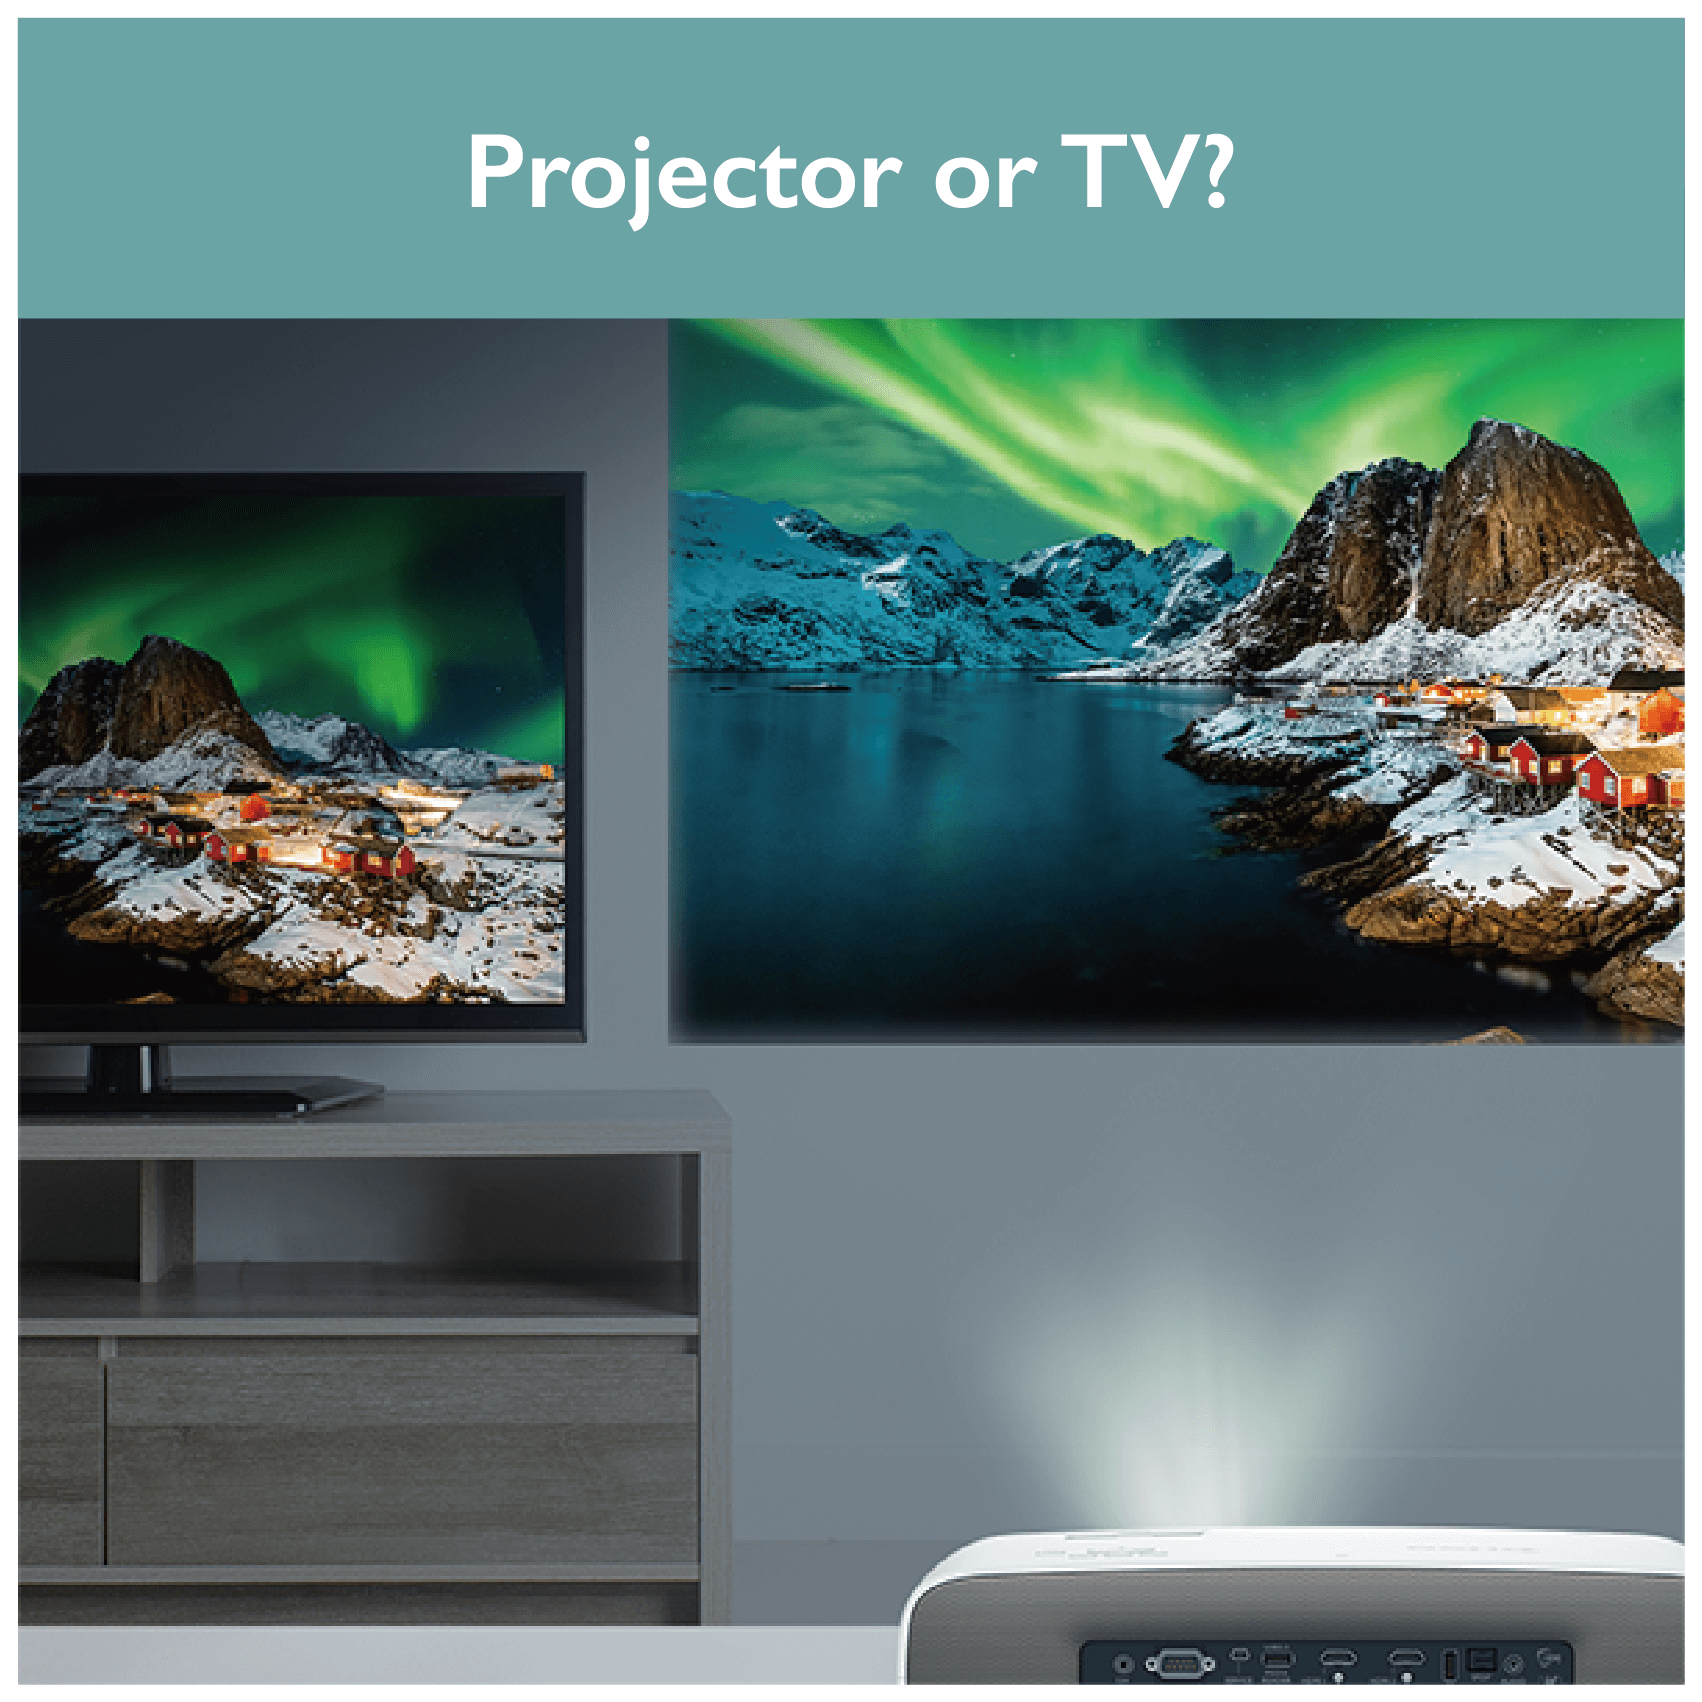 2020 4K Home Theater Projector Buying Guide For Buyer's To